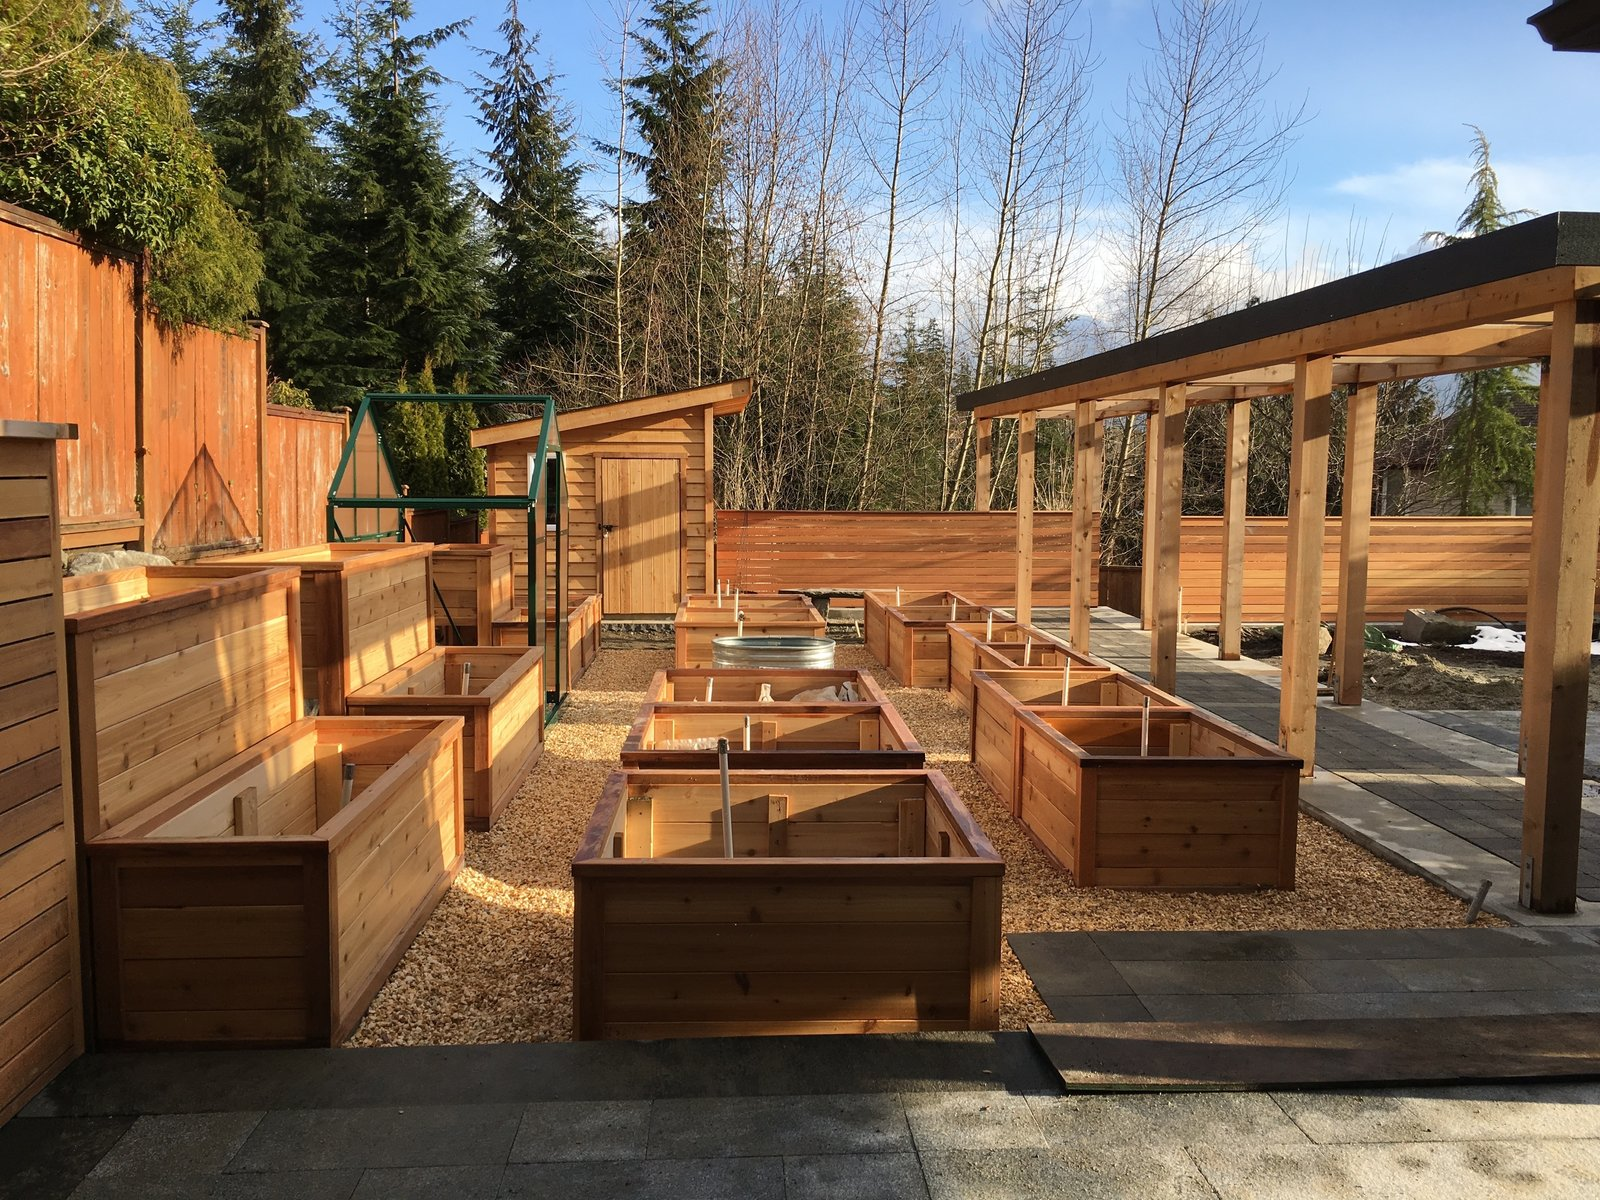 """Overlooking the """"growzone"""" with raised cedar planter boxes, greenhouse & potting shed next to the pergola  20+ Ways to Design with Planters by Allie Weiss from Port Moody Makeover"""